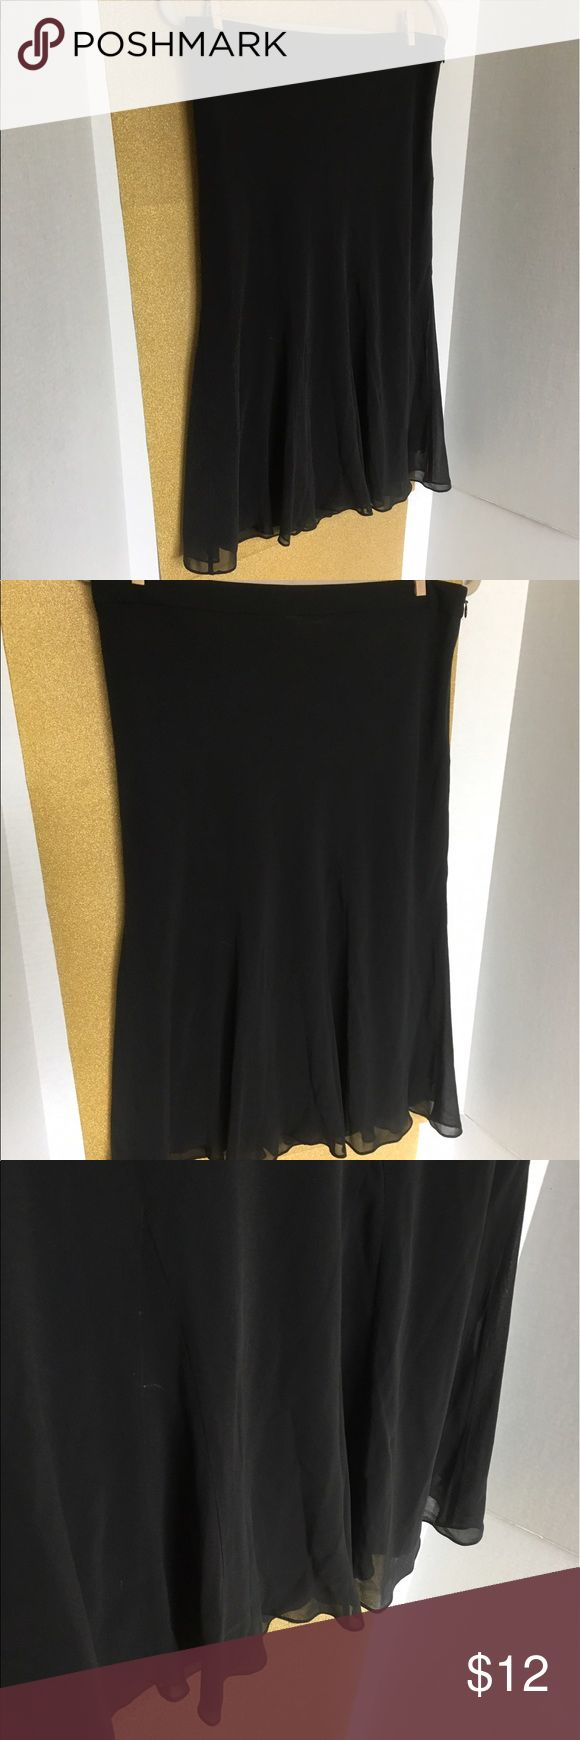 Banana Republic skirt used good condition Black gauzy a-line/trumpet style skirt.  This is a great date skirt, would pair well with a silky cream  blouse and red heels! GAP Skirts A-Line or Full